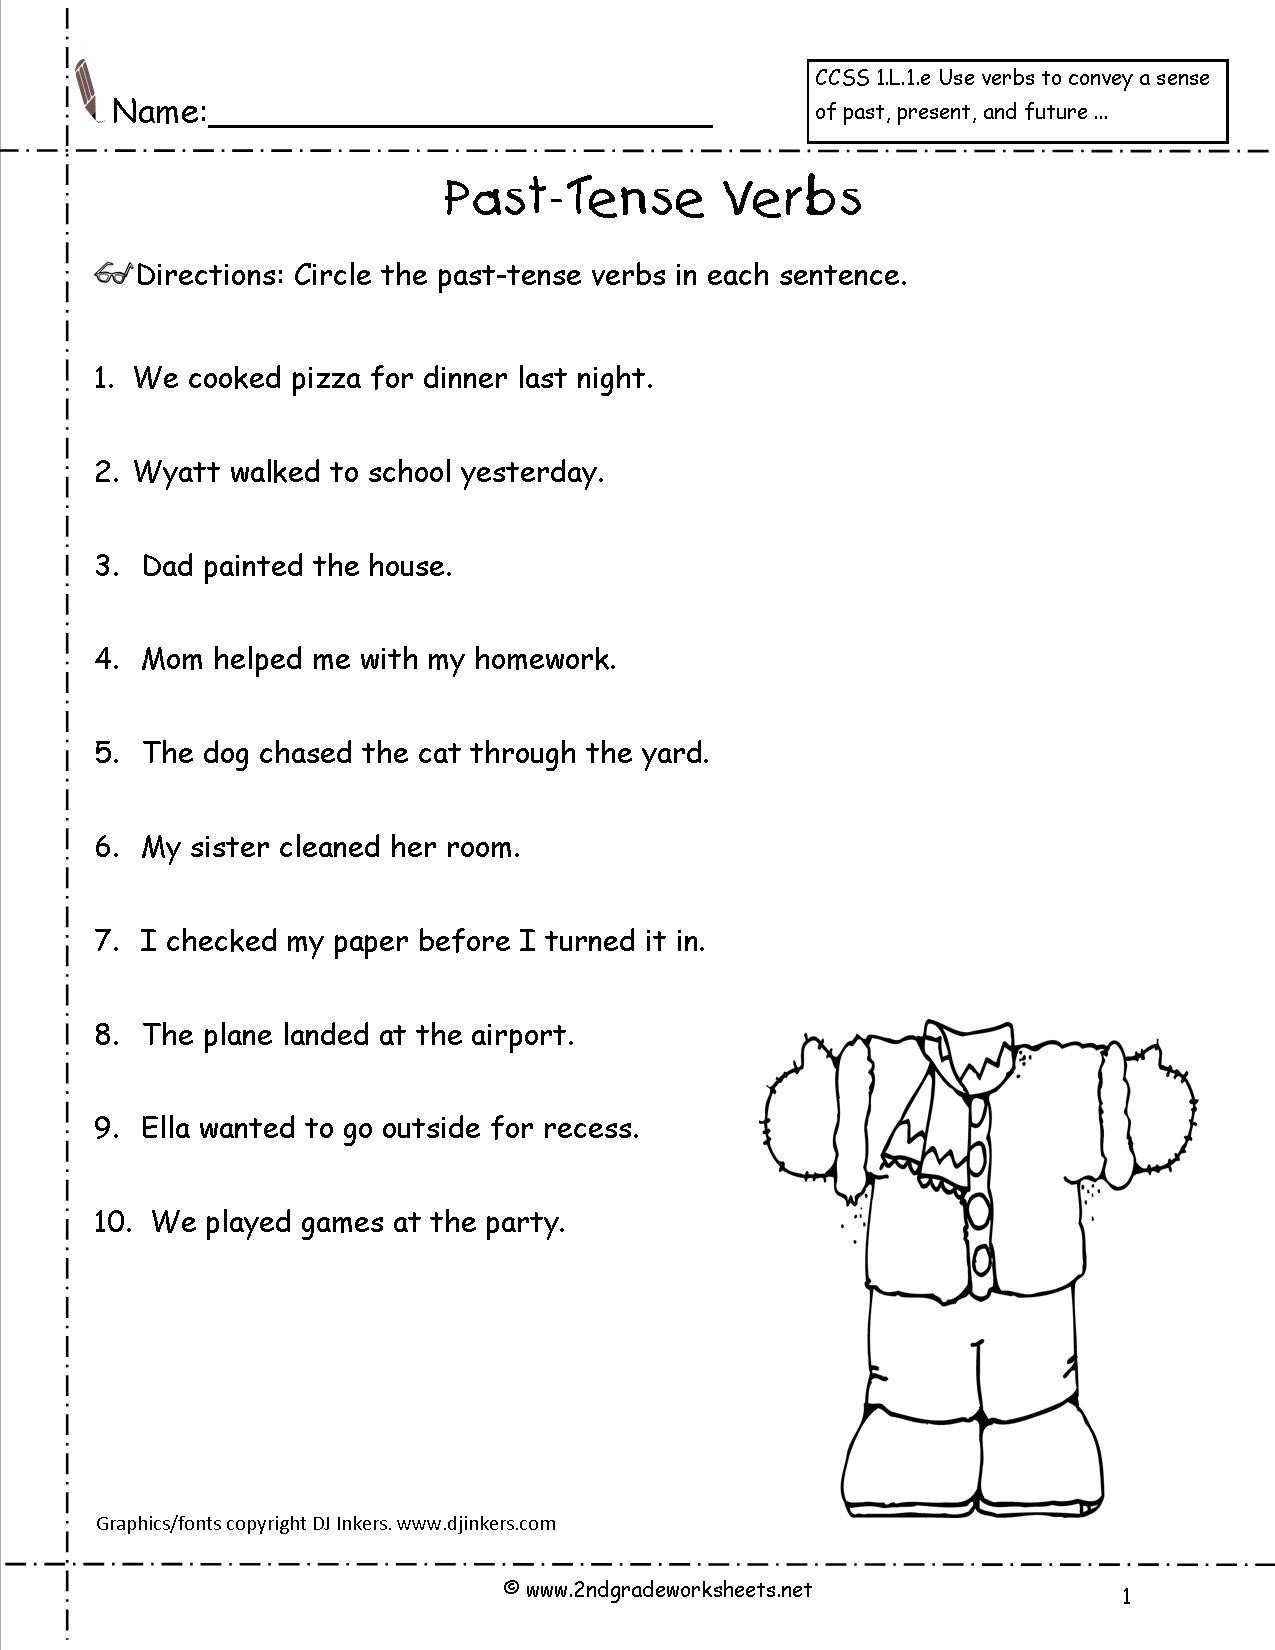 Future Tense Verbs Worksheet Past and Present Worksheet Kindergarten